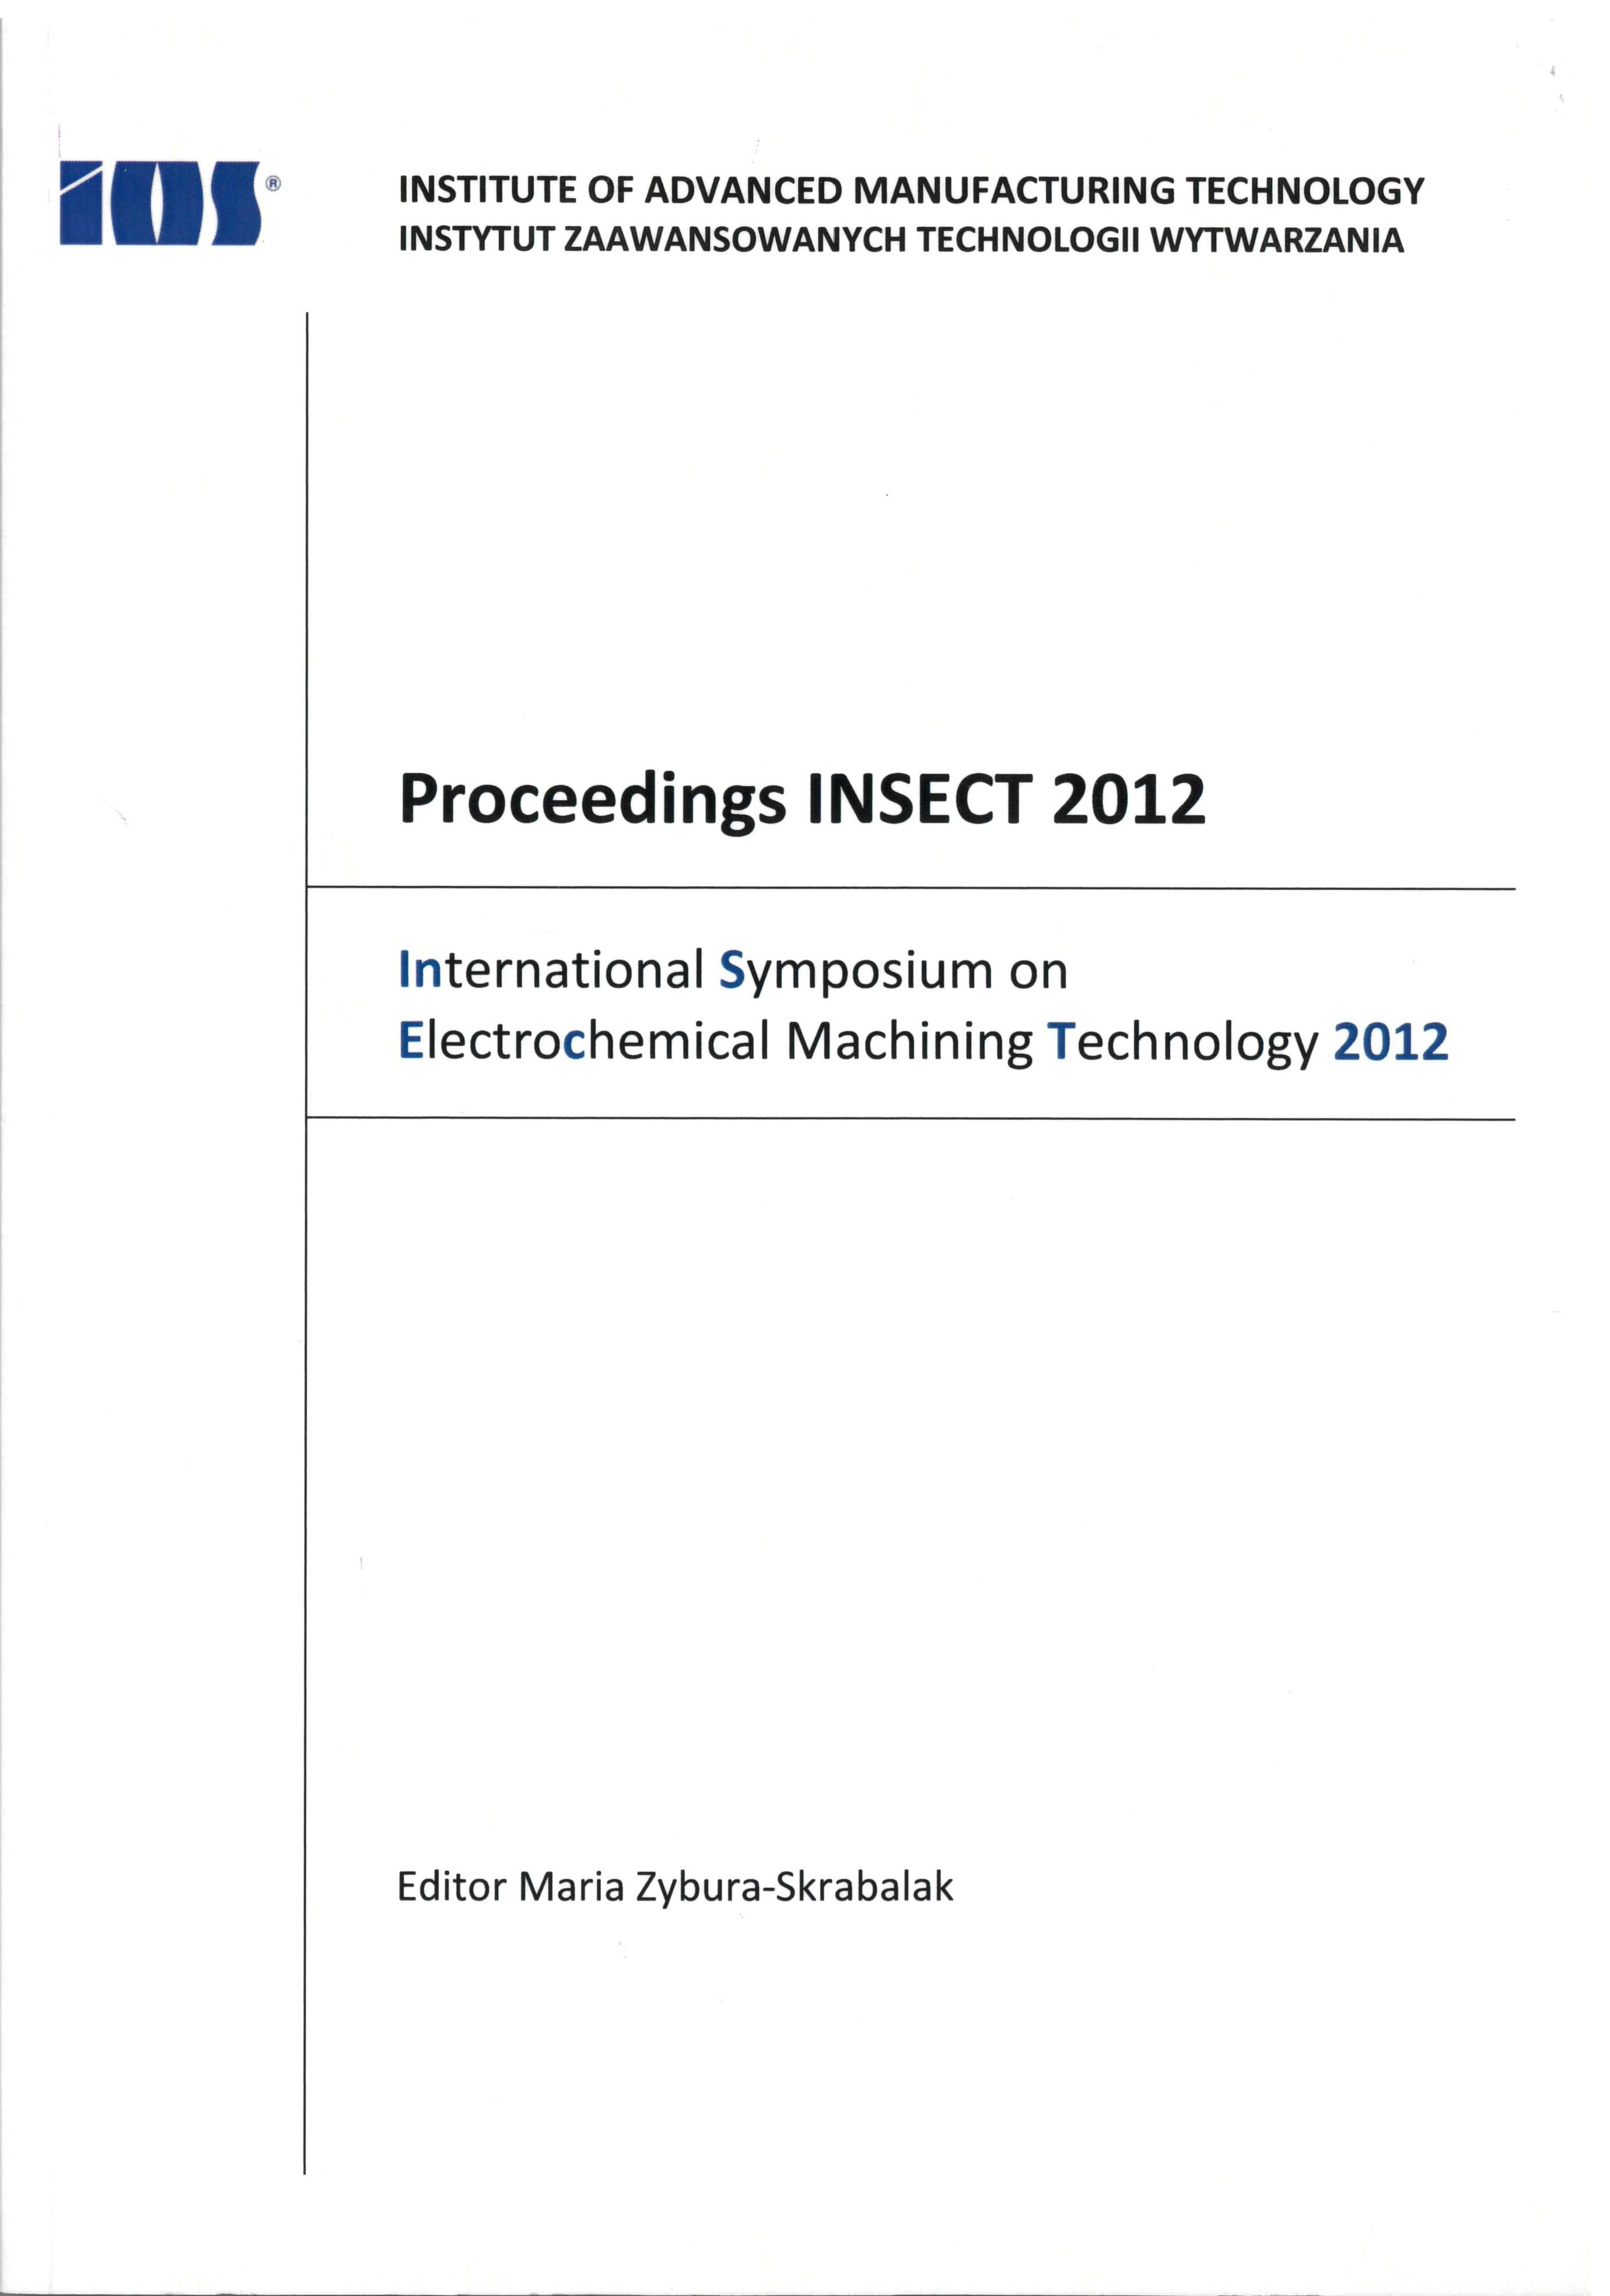 Proceedings INSECT 2012 – International Symposium on Electrochemical Machining Technology 2012